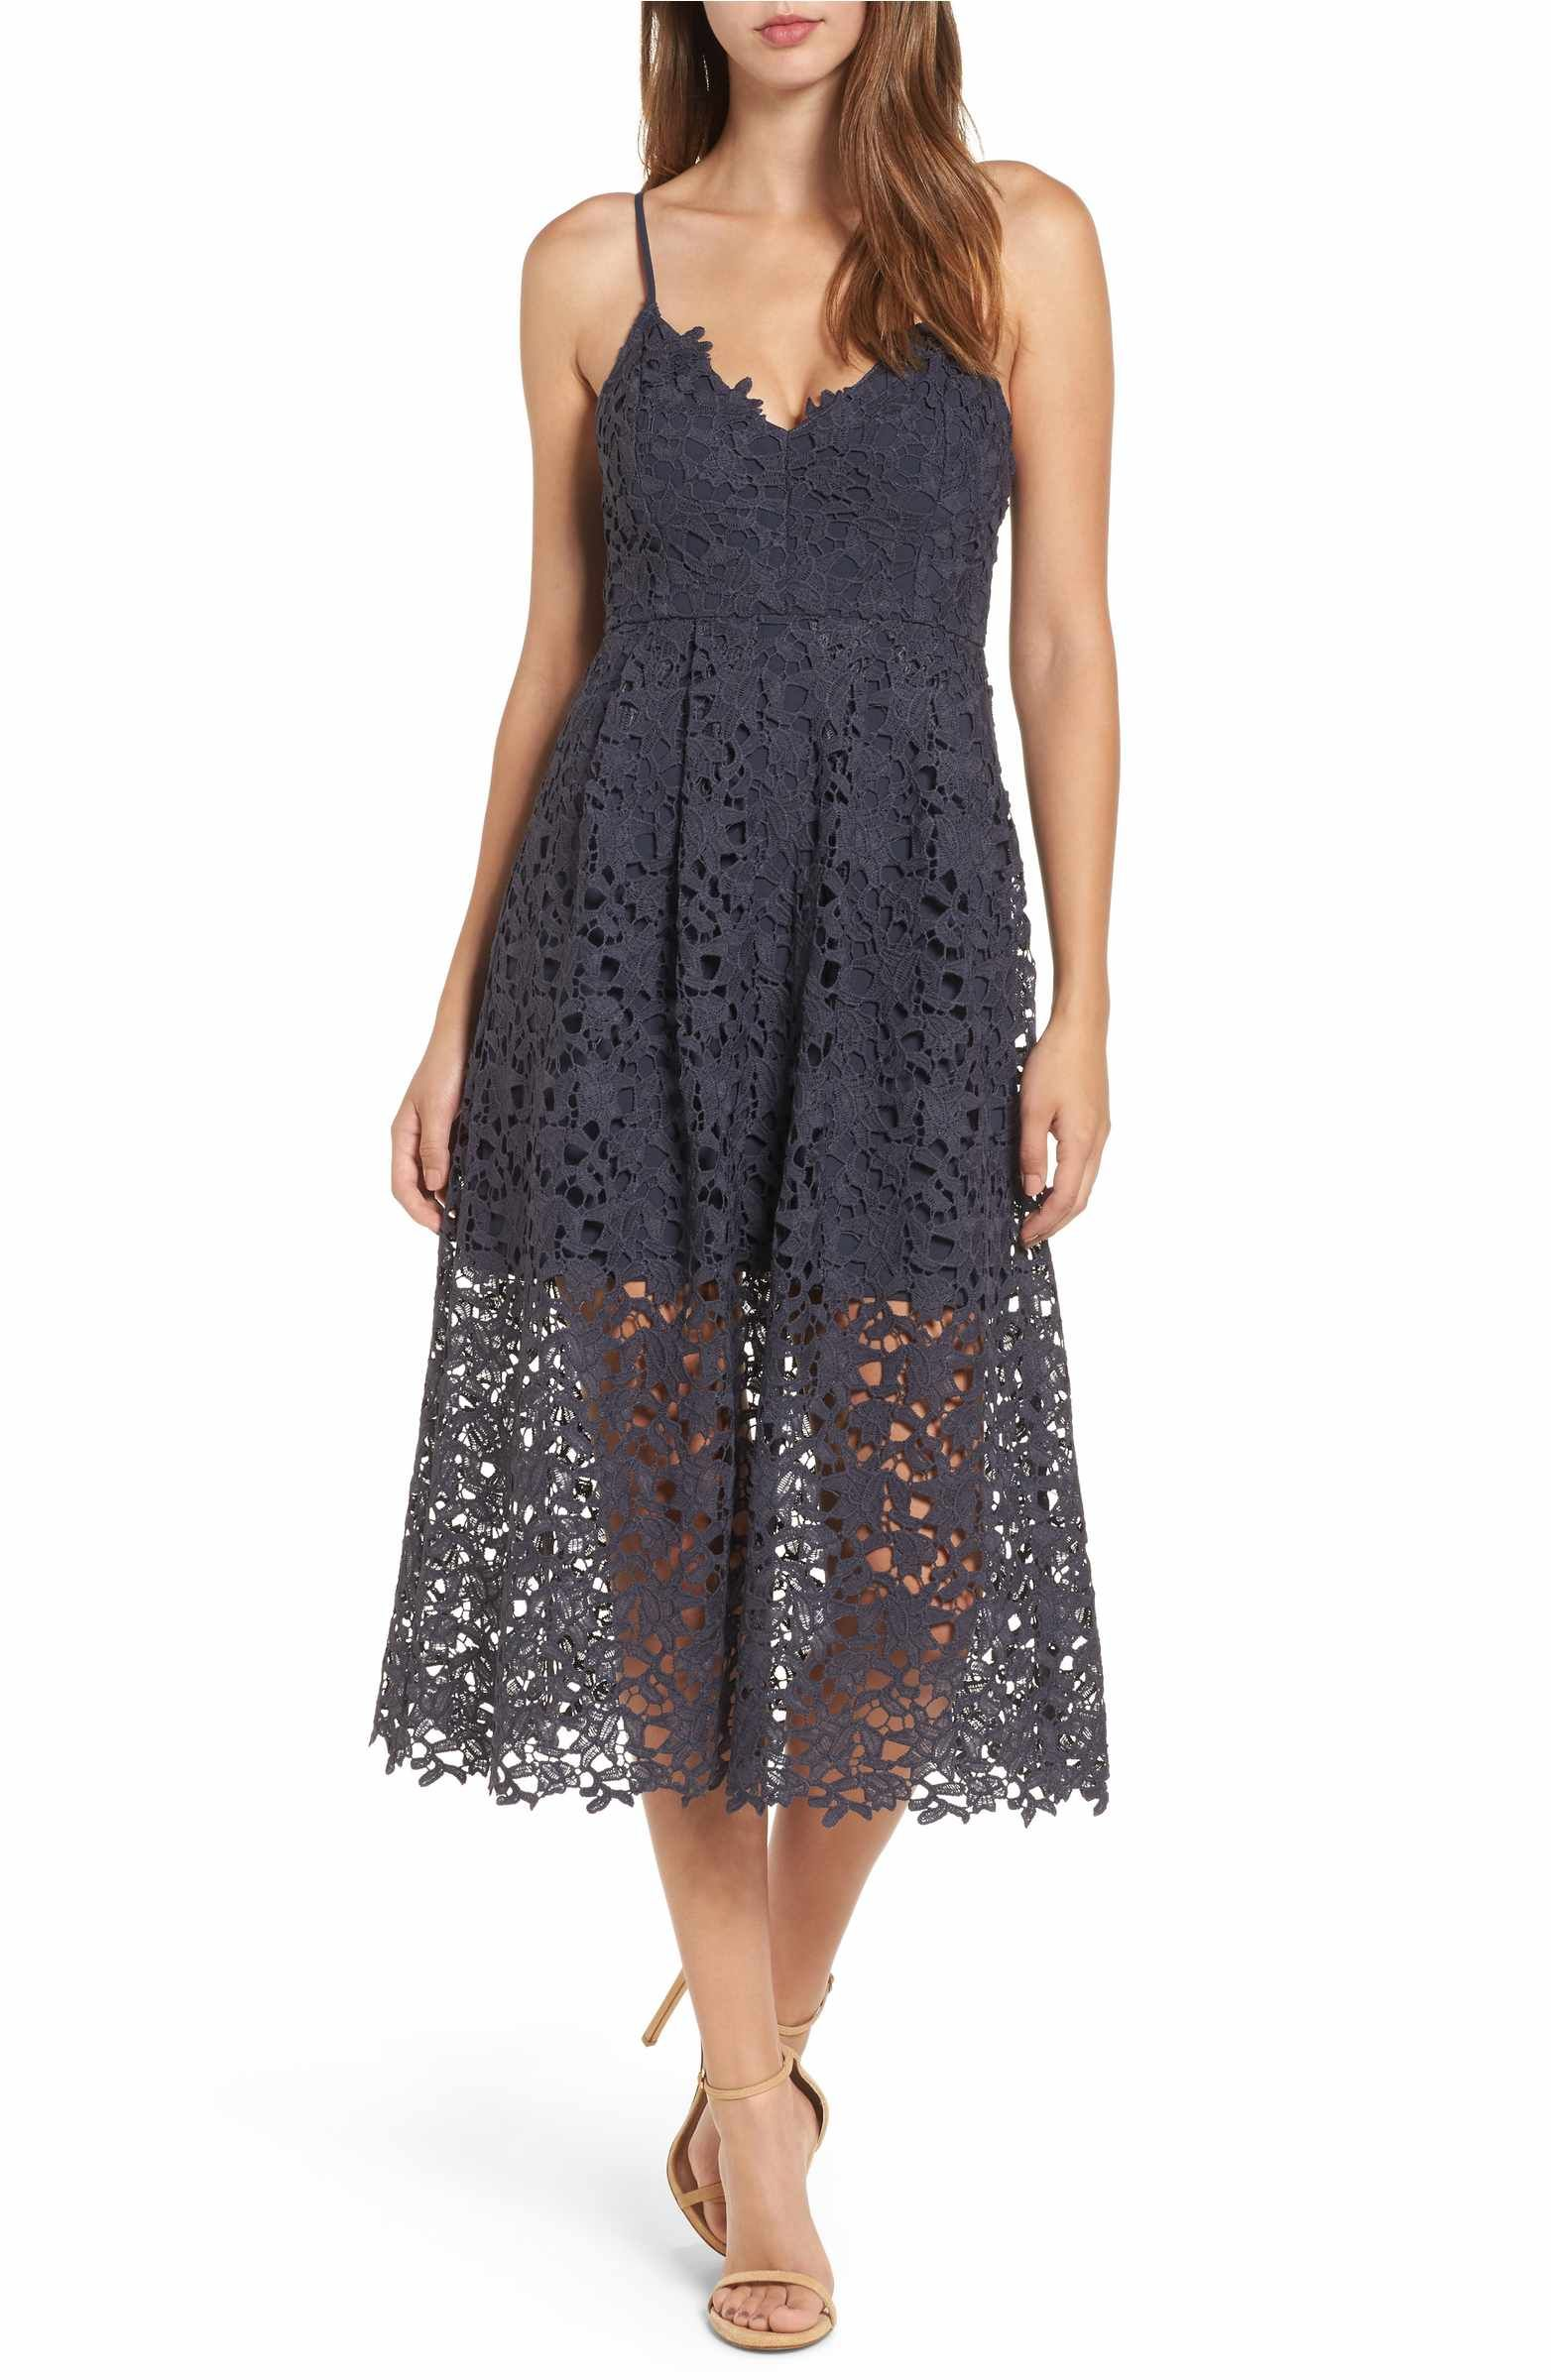 46affbc50200 Main Image - ASTR the Label Lace Midi Dress